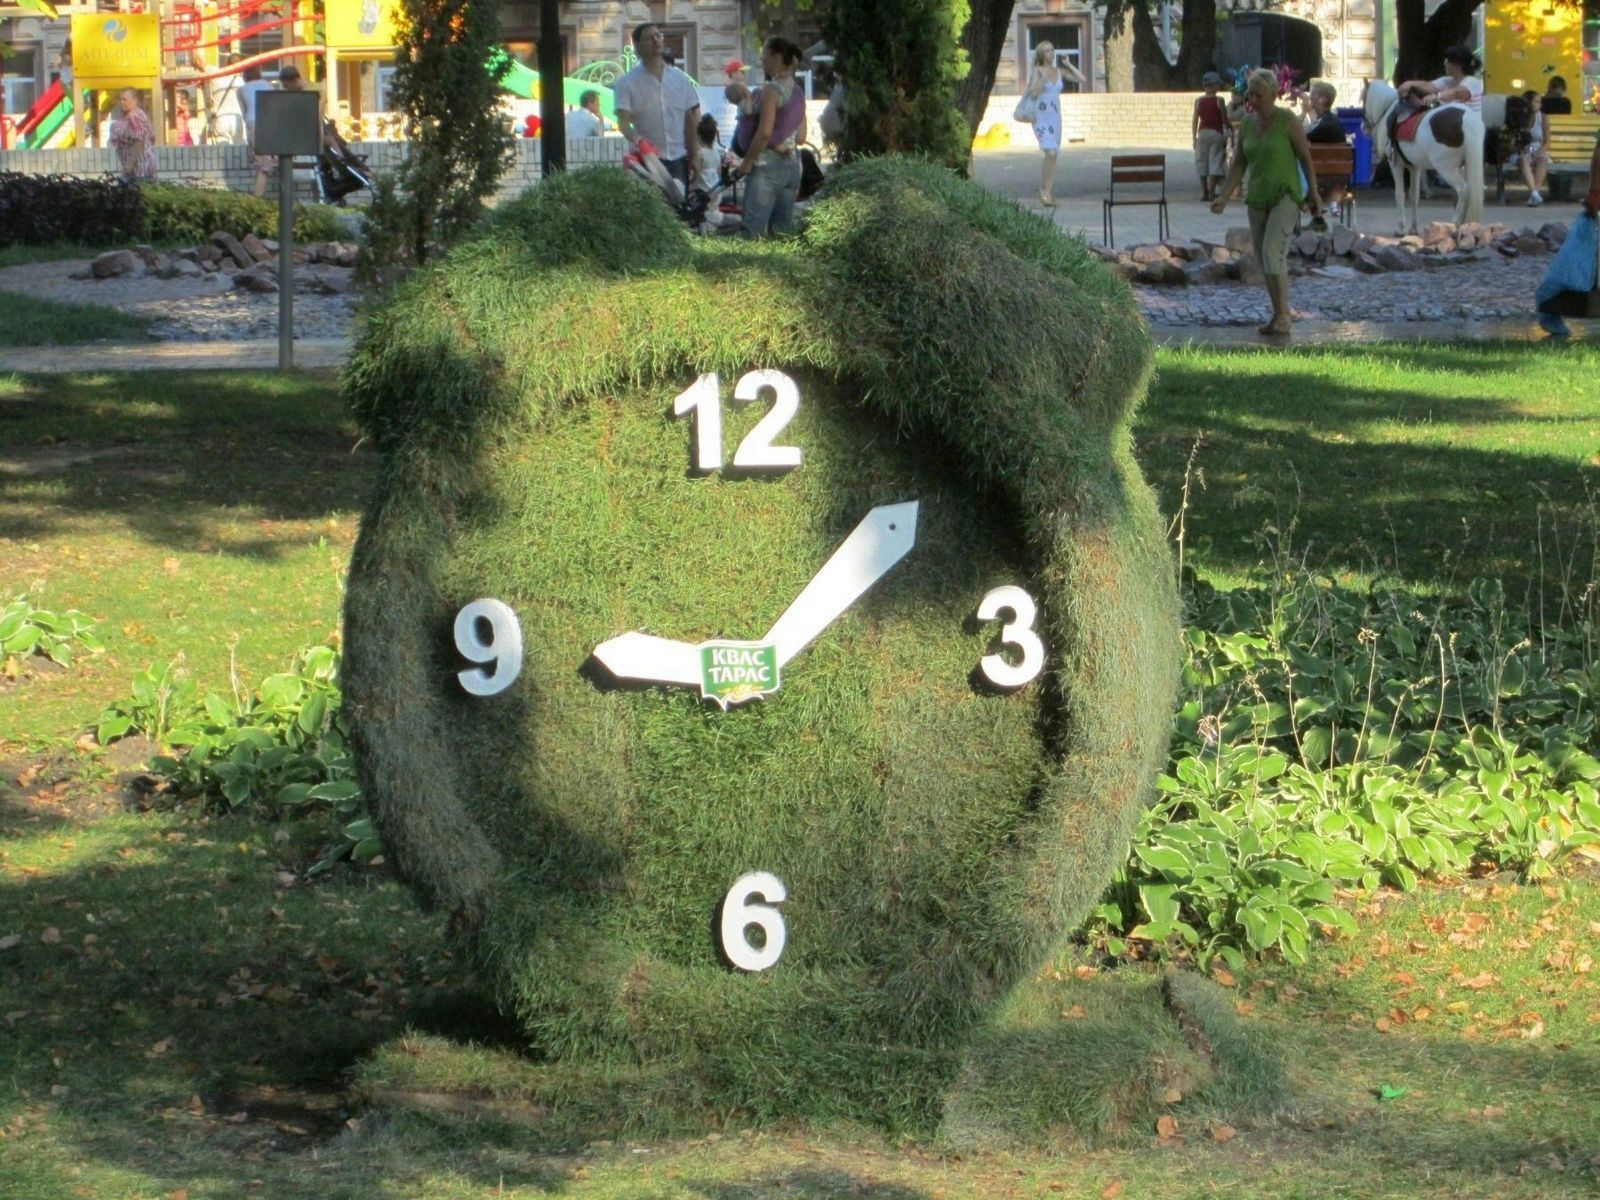 Gartenskulpturen Einzigartig Grass Sculpture Clock topiary